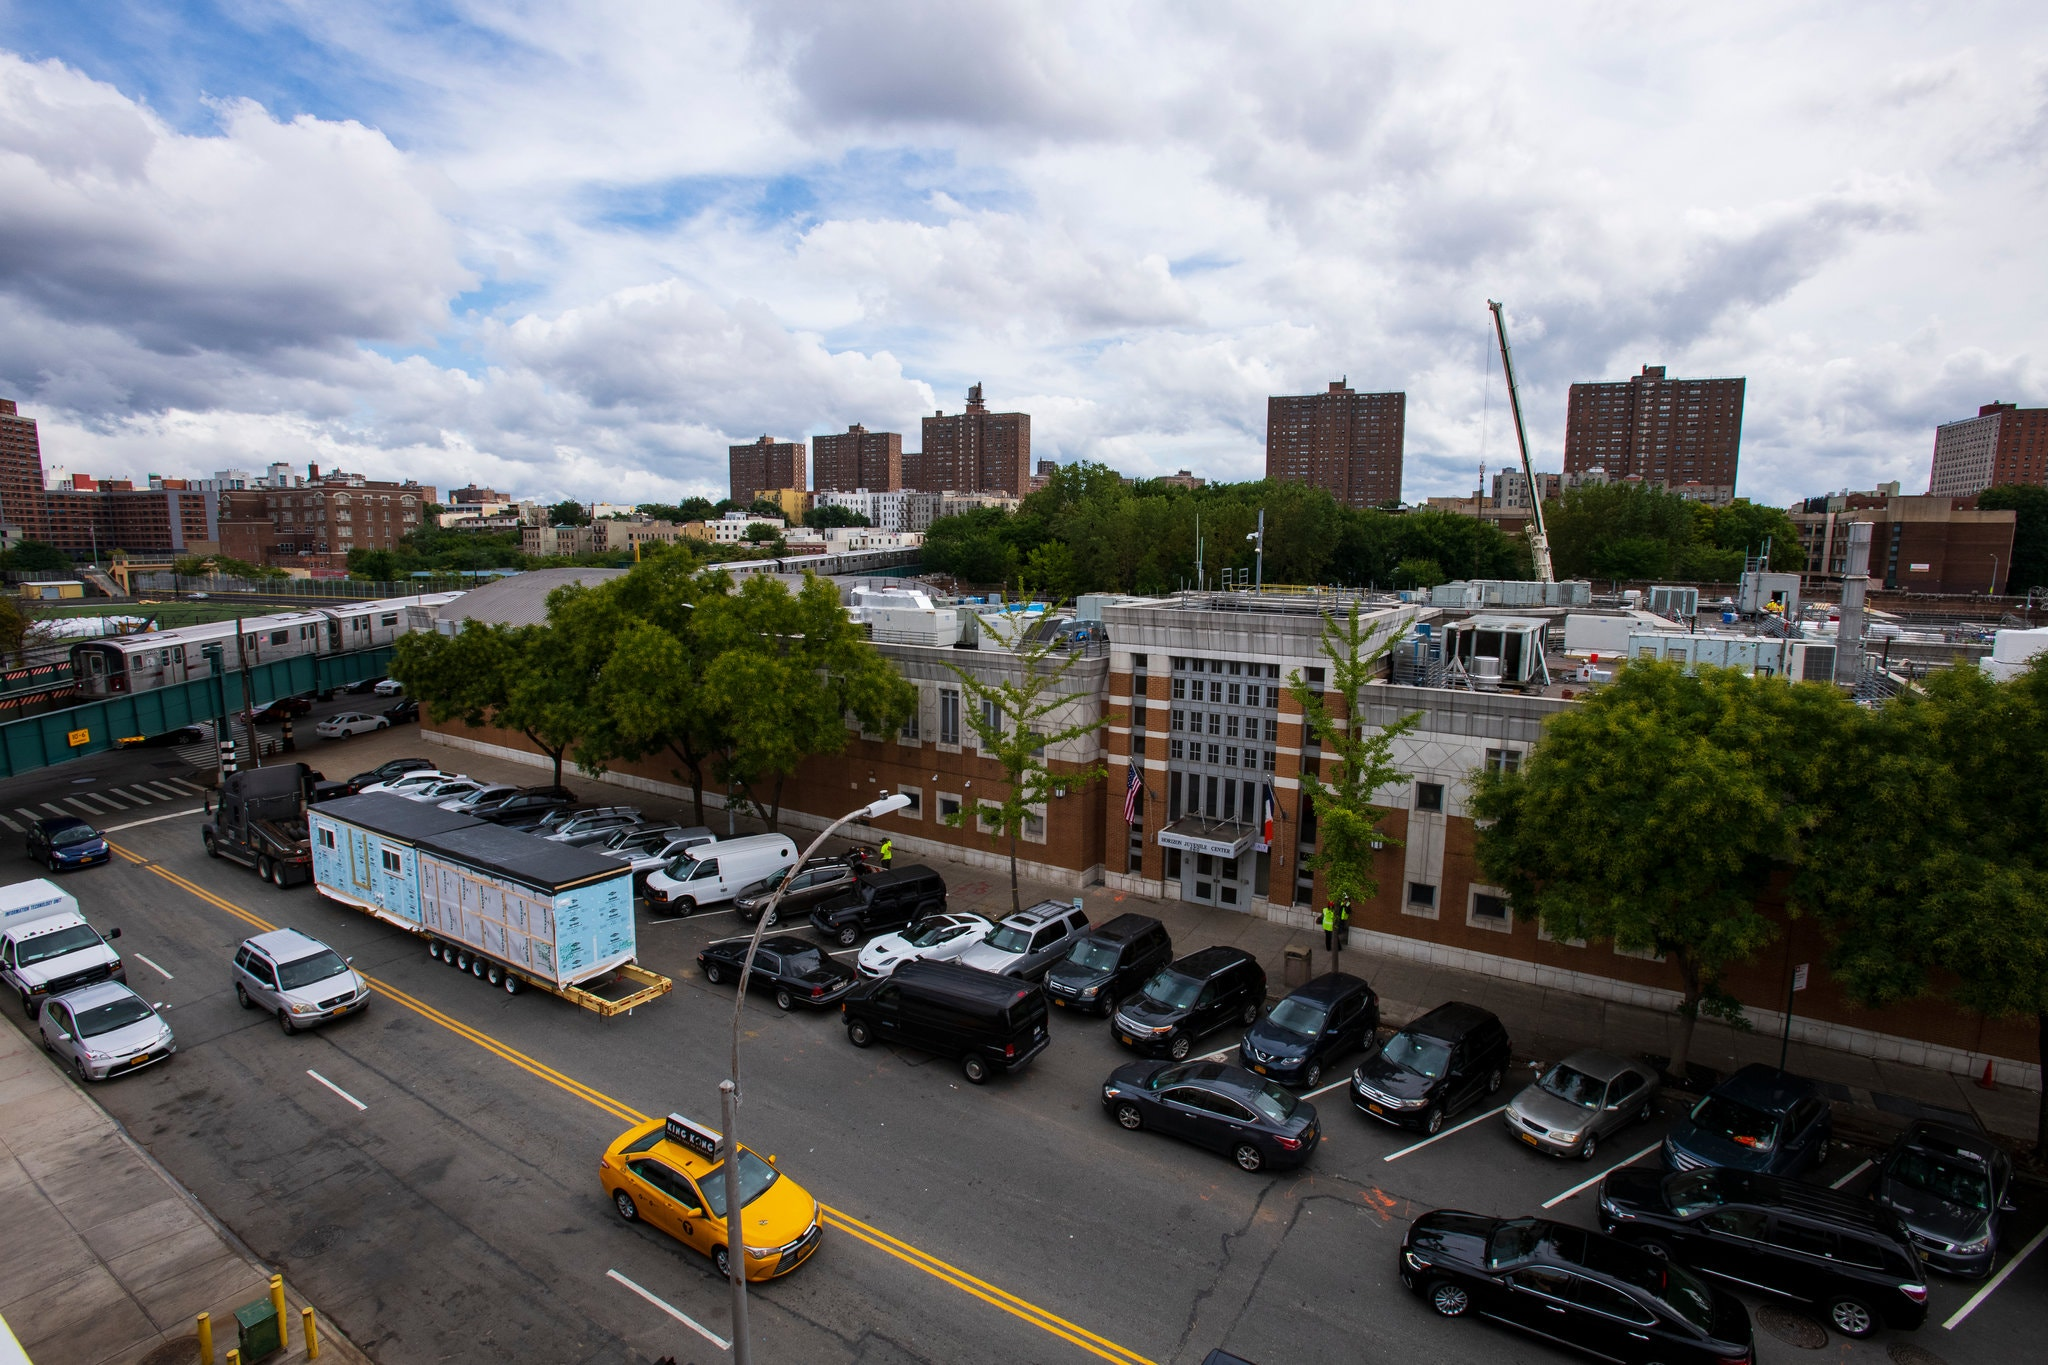 The Horizon Juvenile Center in the Bronx is being fortified before 16- and 17-year-old detainees from Rikers Island move in. Credit: Gregg Vigliotti for The New York Times